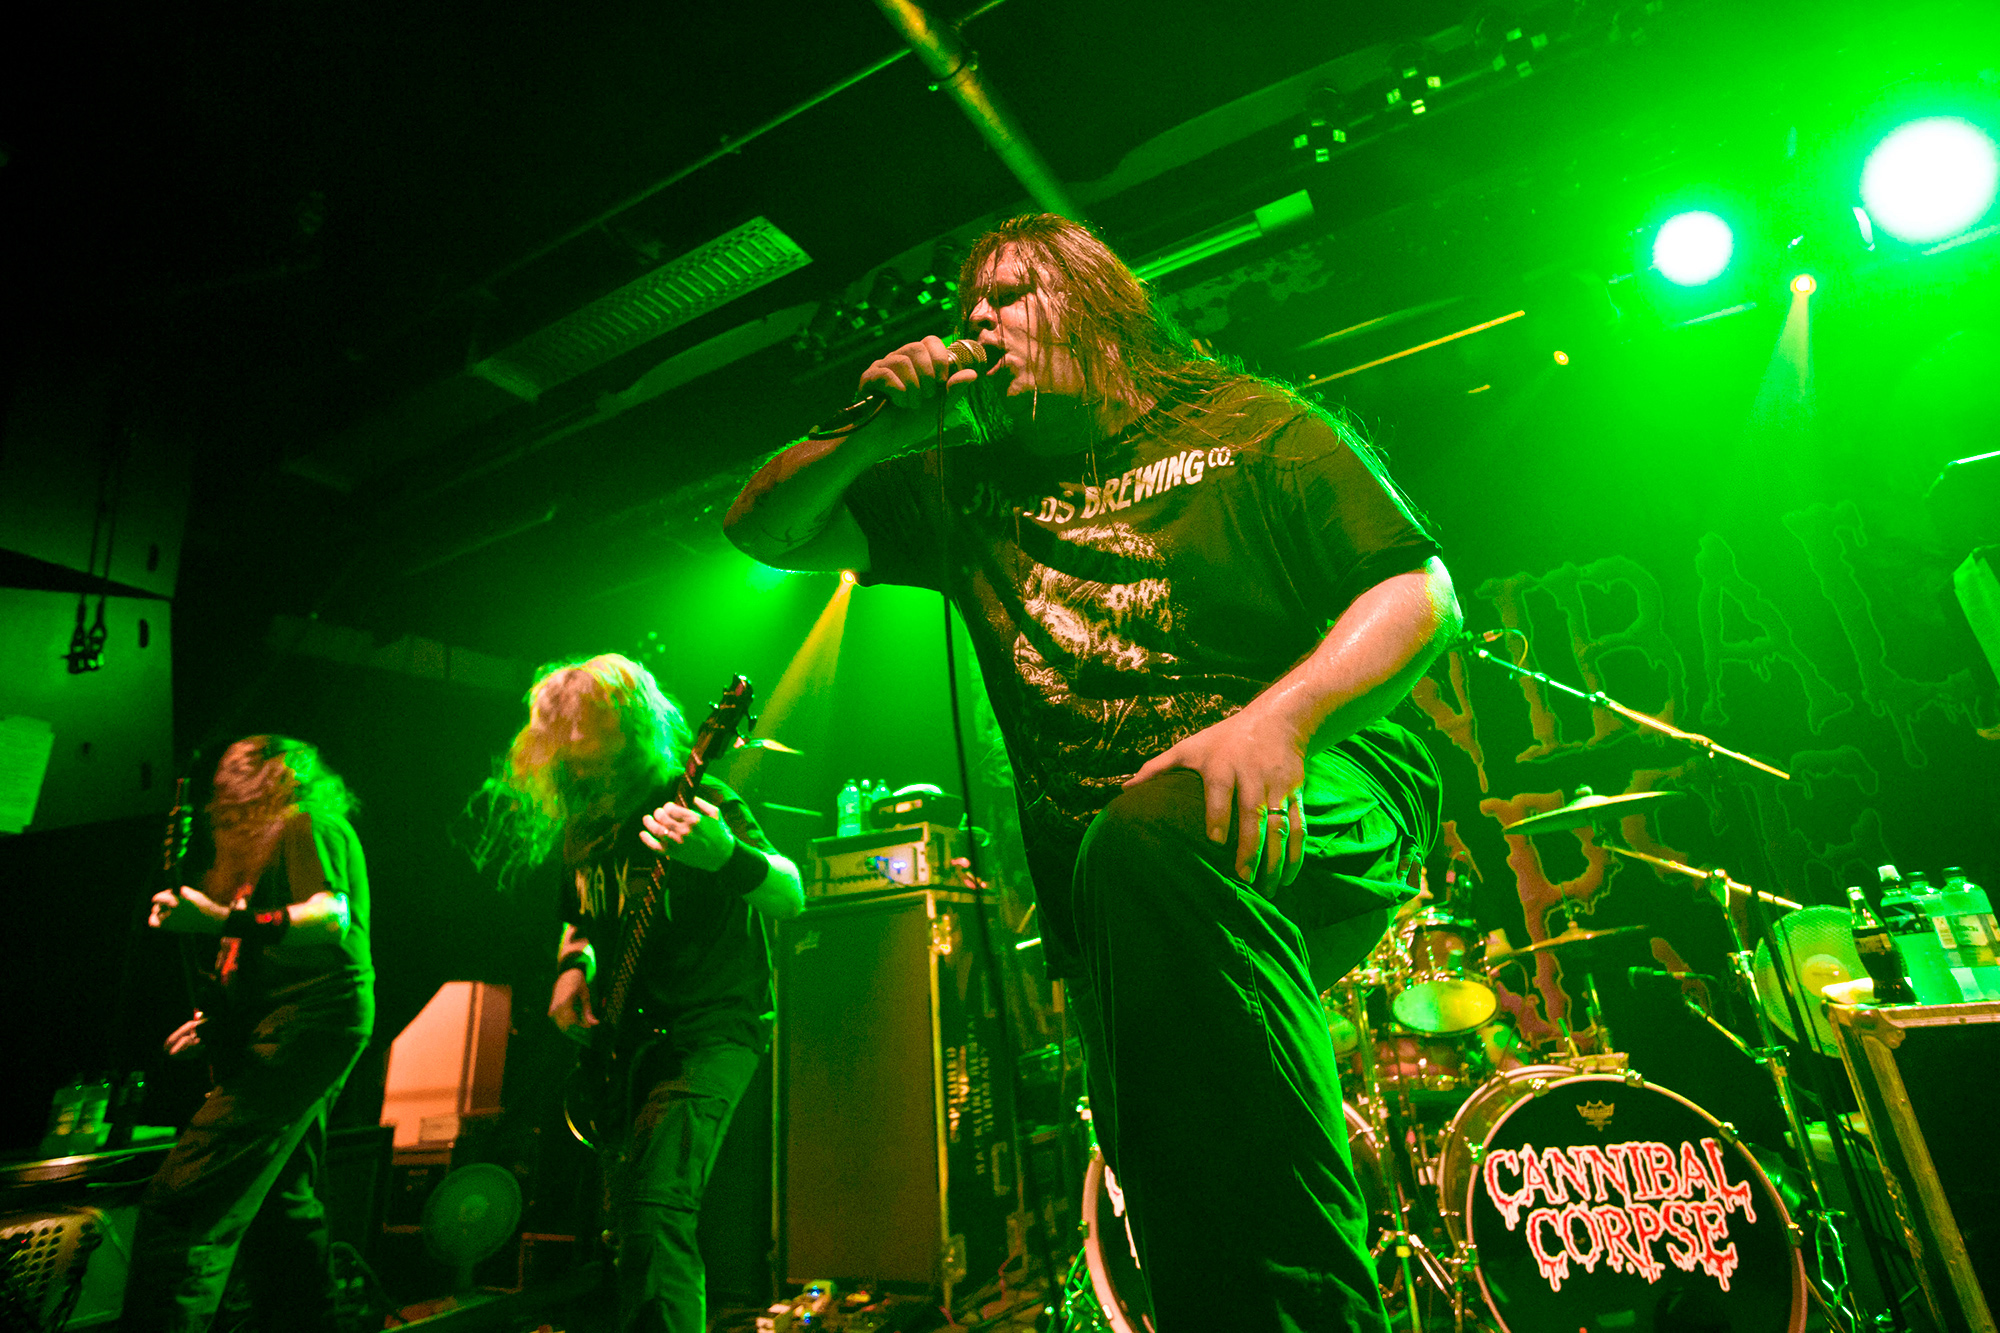 Cannibal Corpse Singer On Pushing Buttons Getting Quot Crap